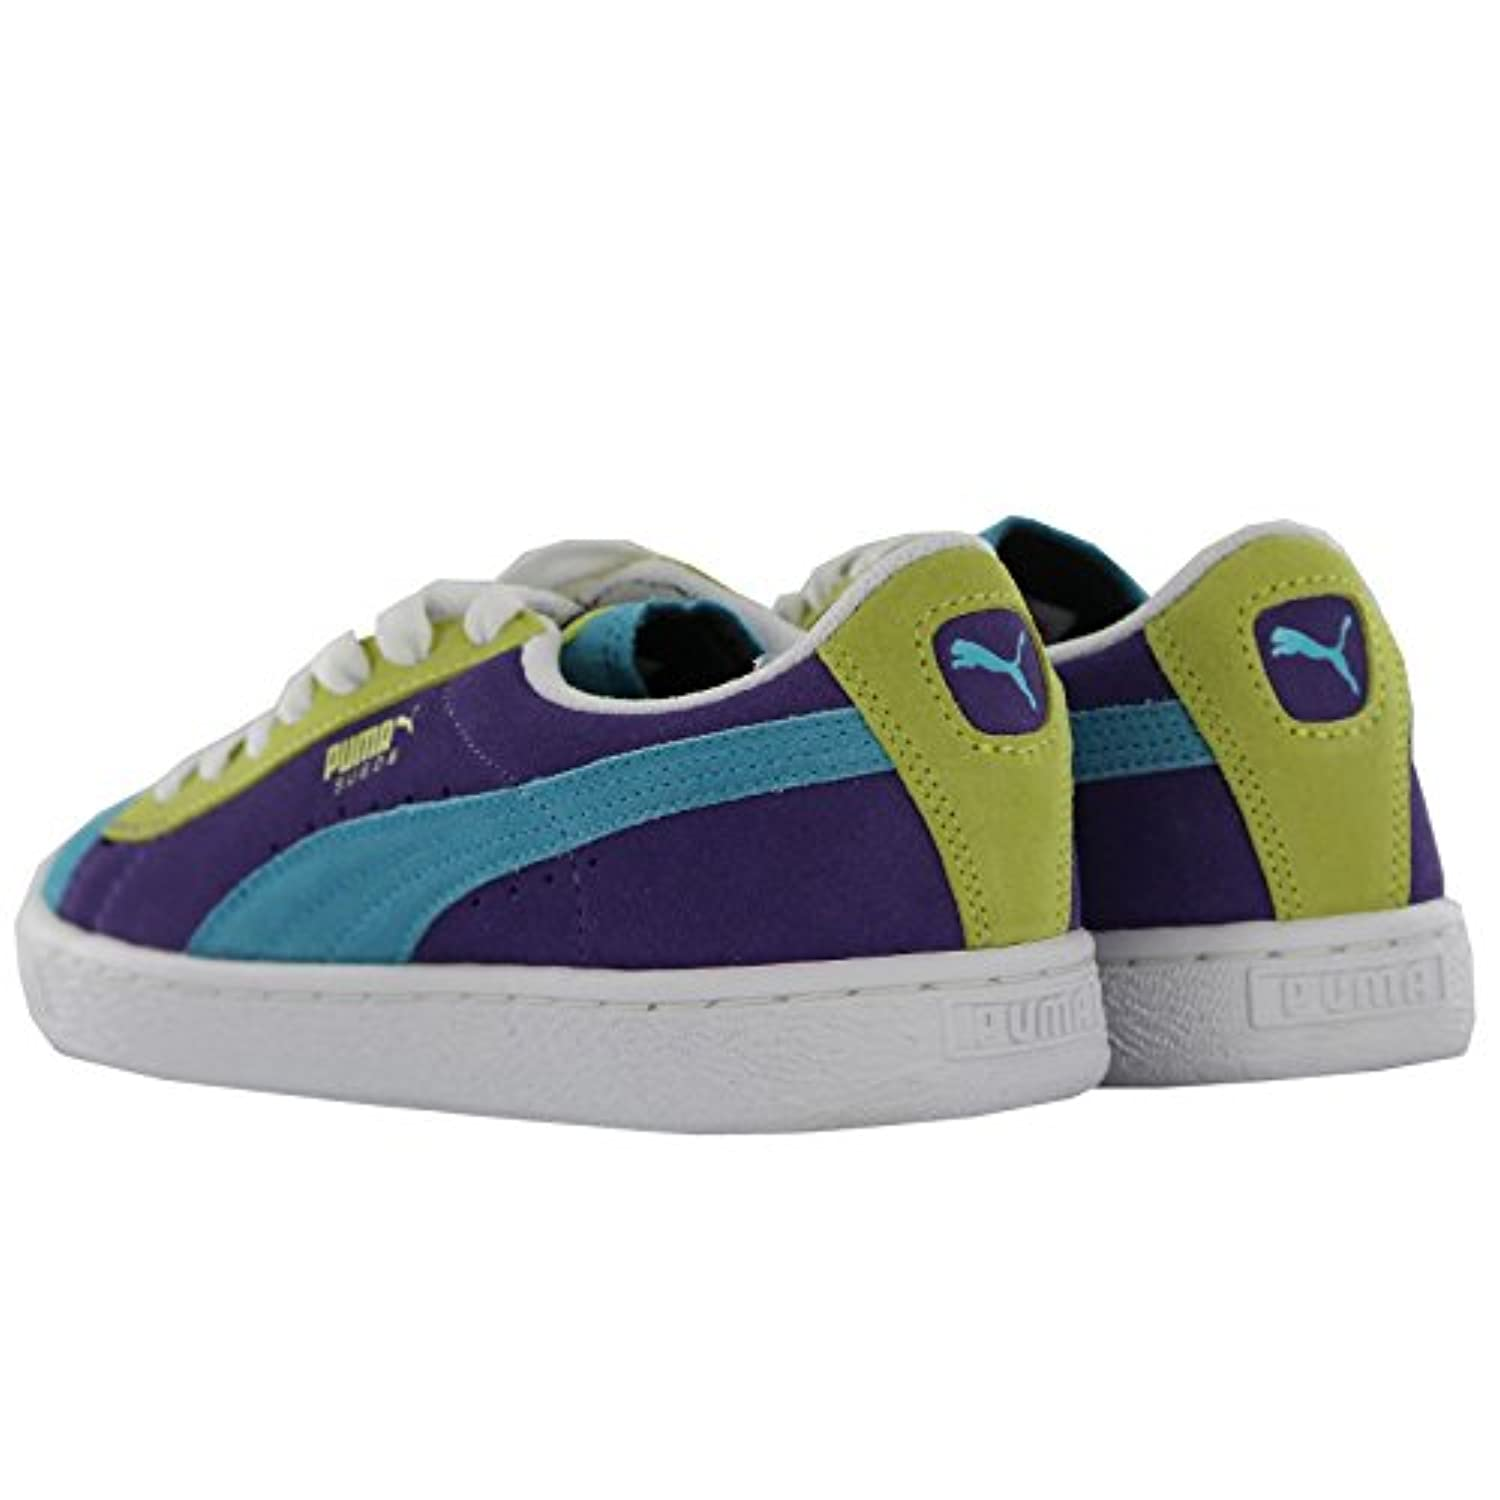 Puma Suede Multi Youths Trainers Size 4 UK